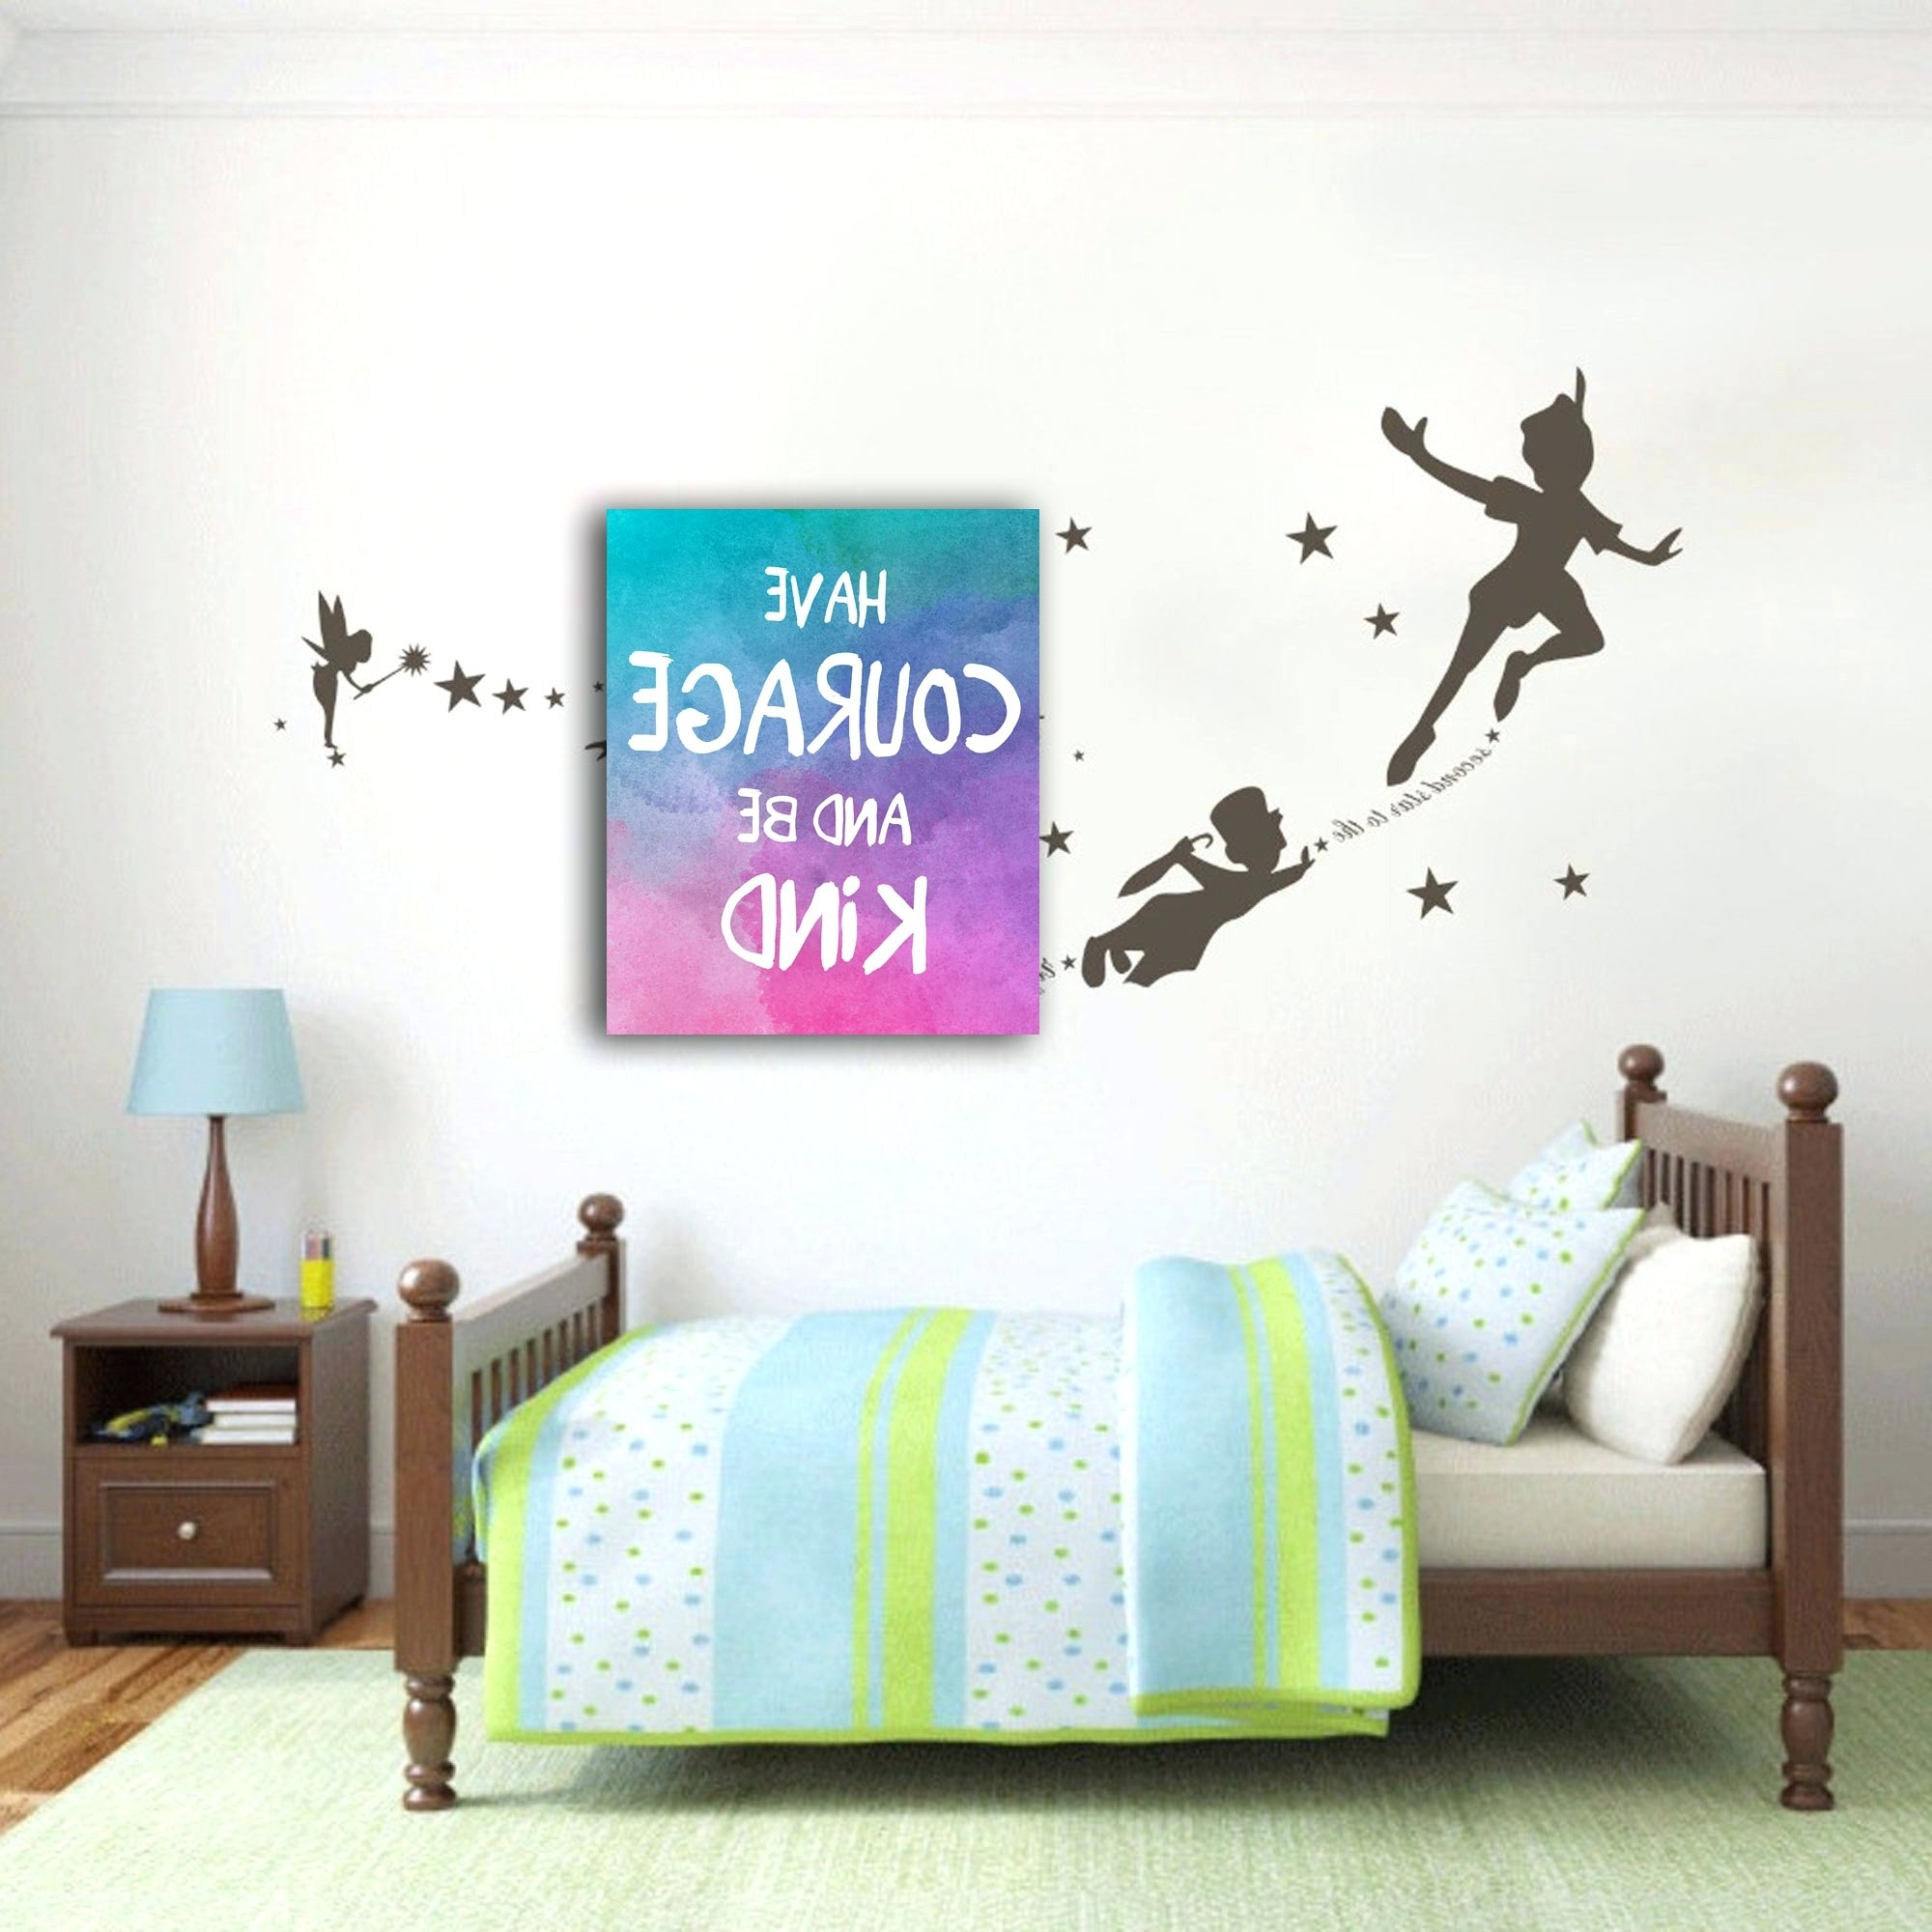 Widely Used Wall Arts ~ Large Image For Splendid Wall Design Someday Inc Within Custom Nursery Canvas Wall Art (View 15 of 15)